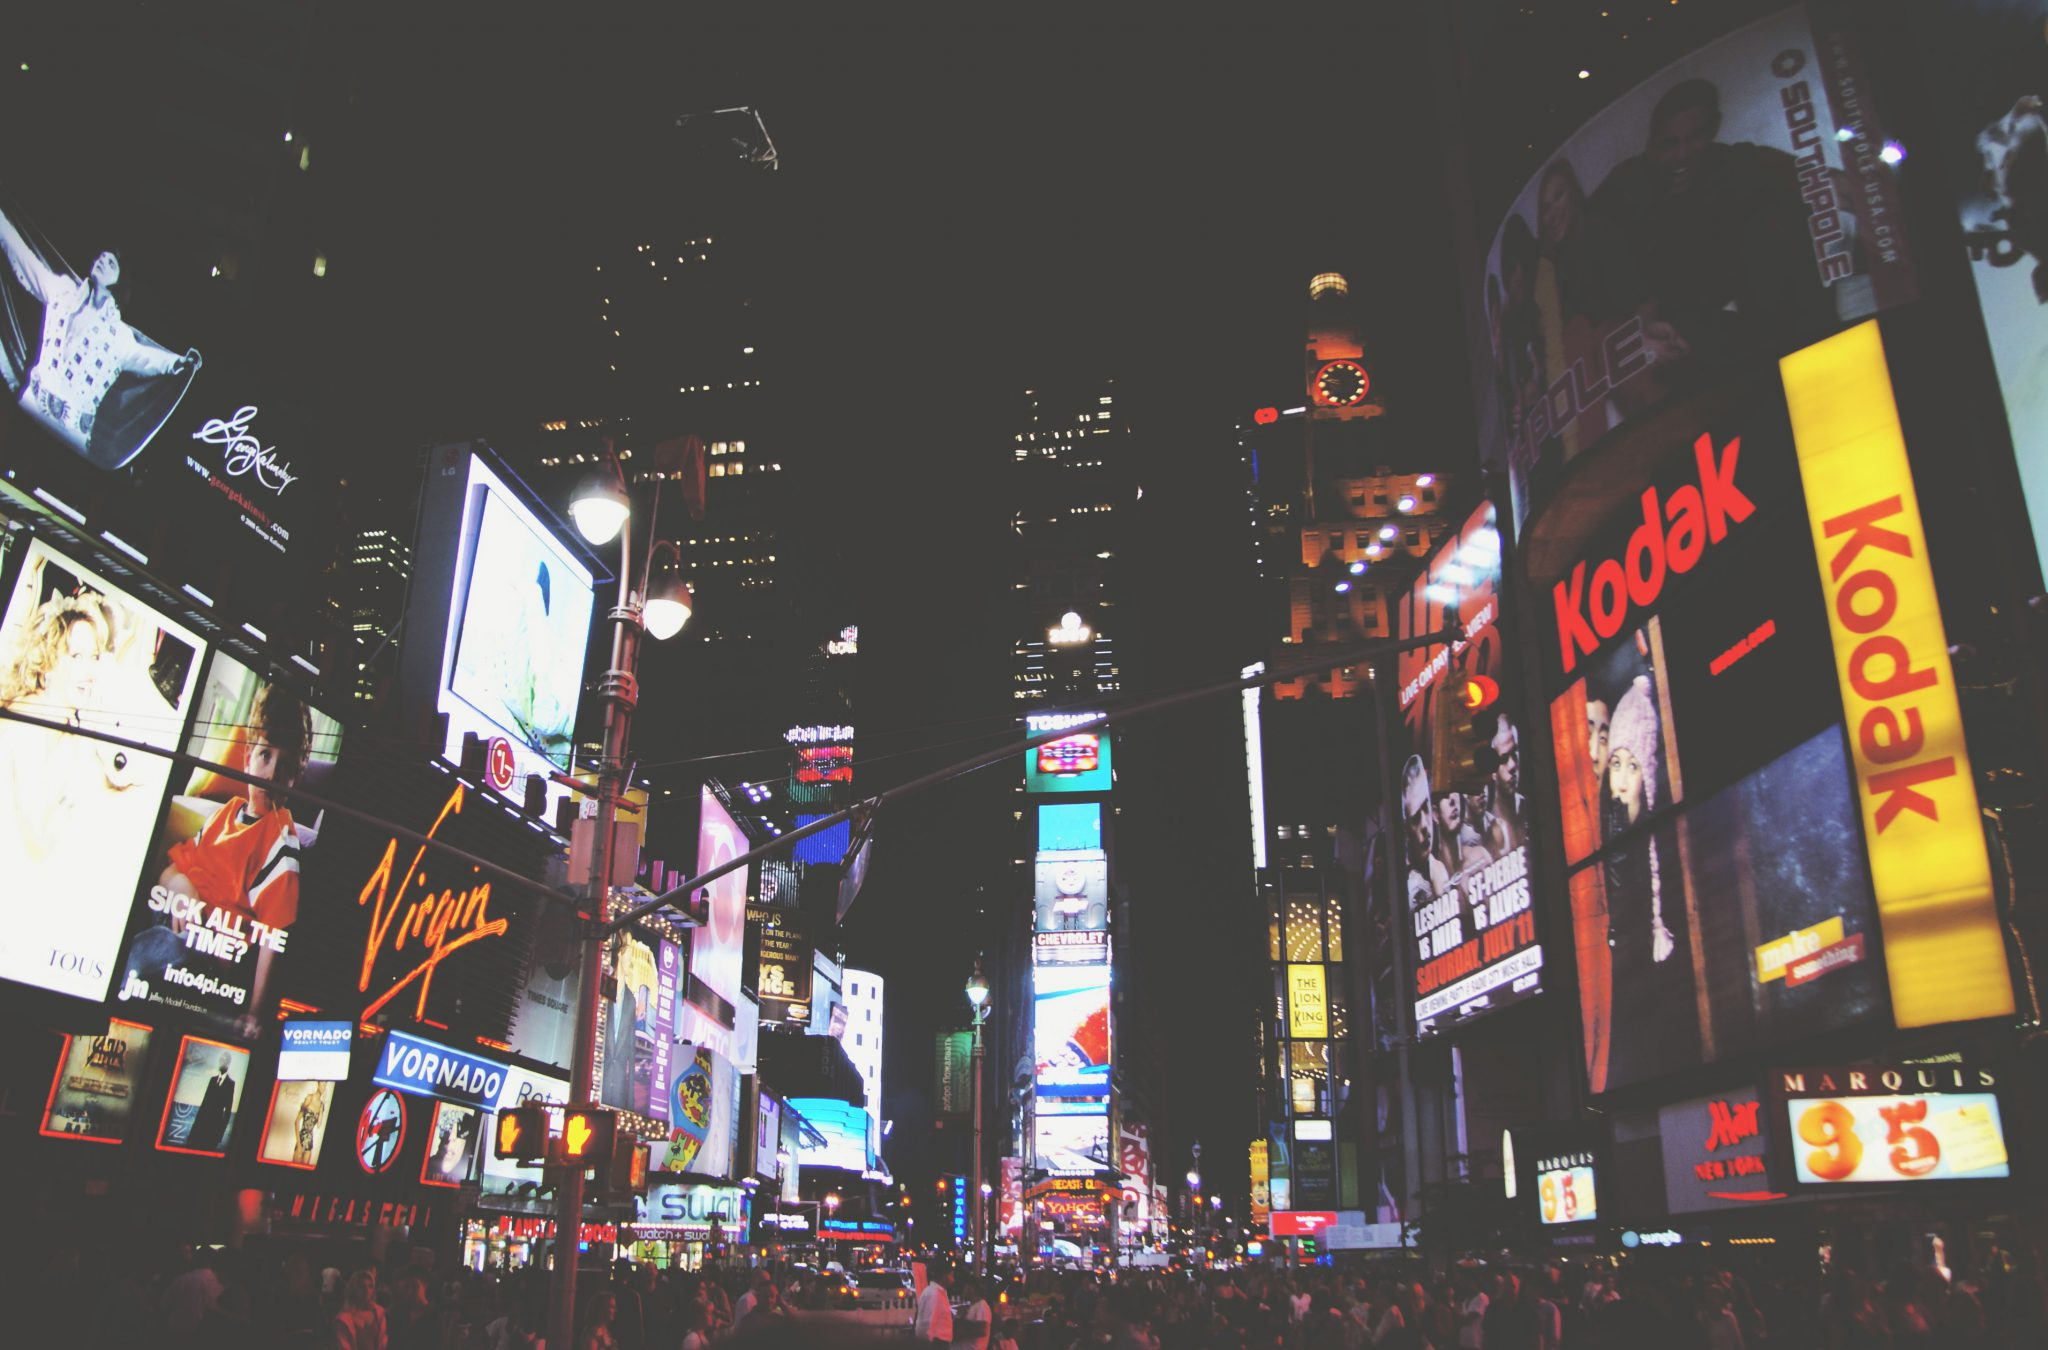 city-marketing-lights-night